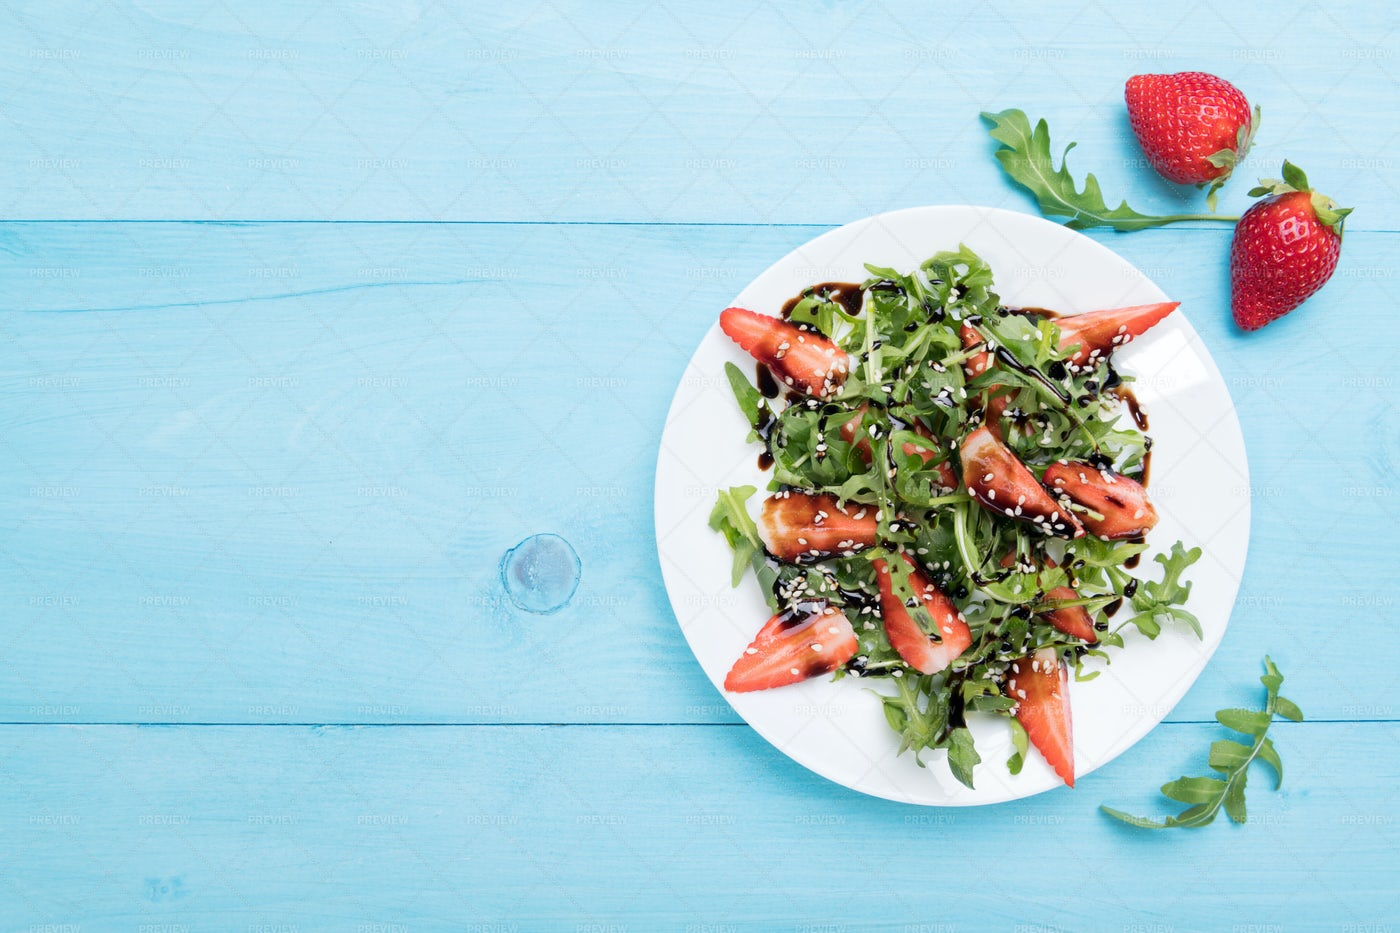 Arugula And Strawberry Plate: Stock Photos